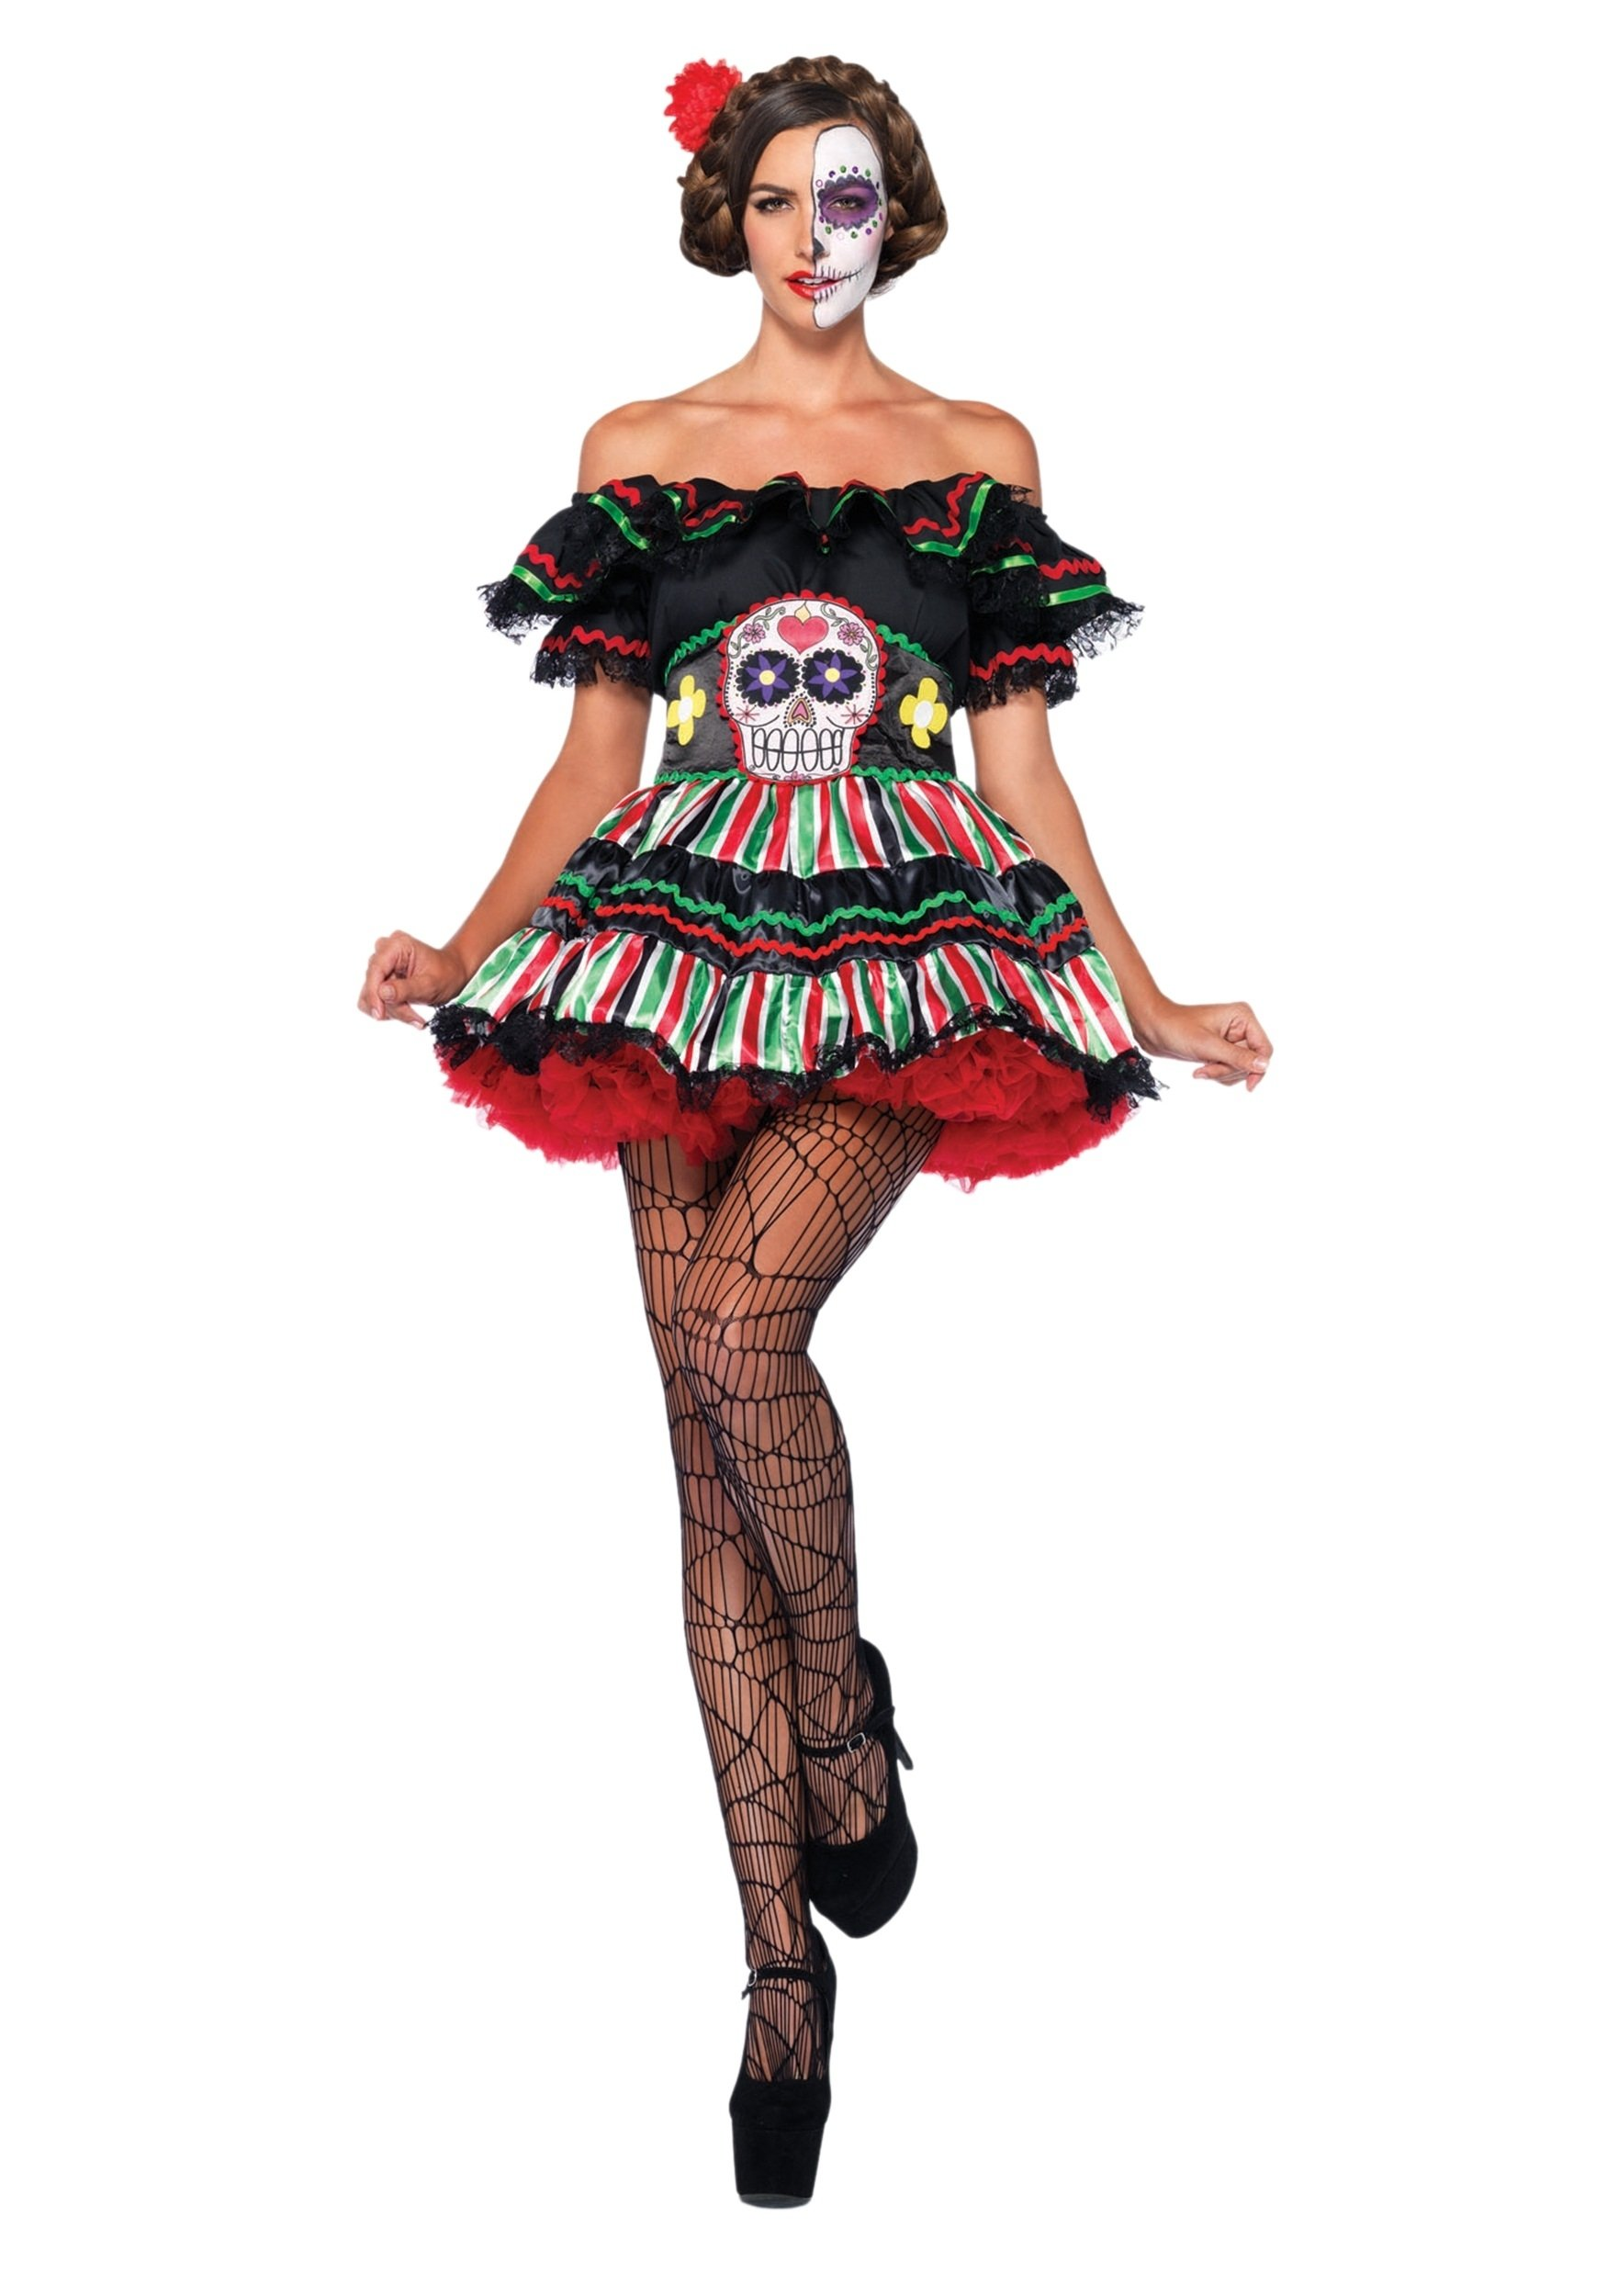 10 Great Day Of The Dead Halloween Costume Ideas day of the dead doll costume 2020